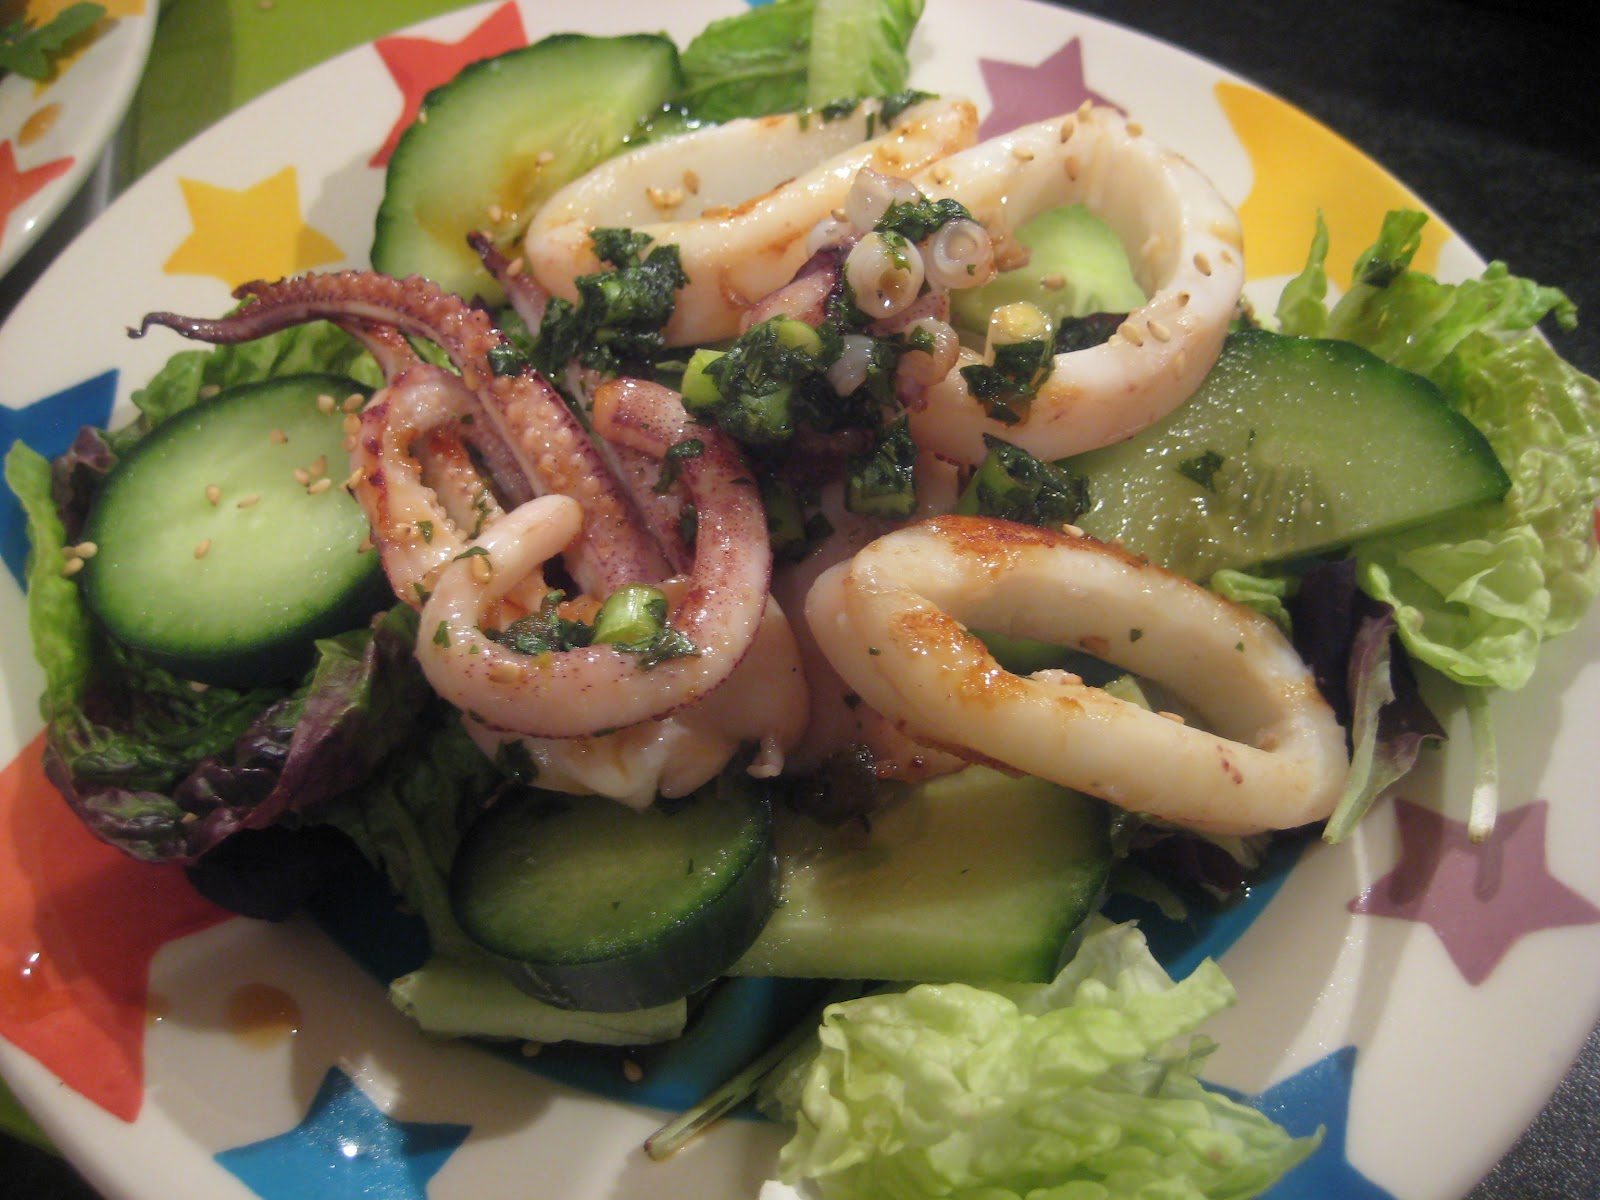 Squid Salad (adapted from WeightWatchers Soups and Salads)